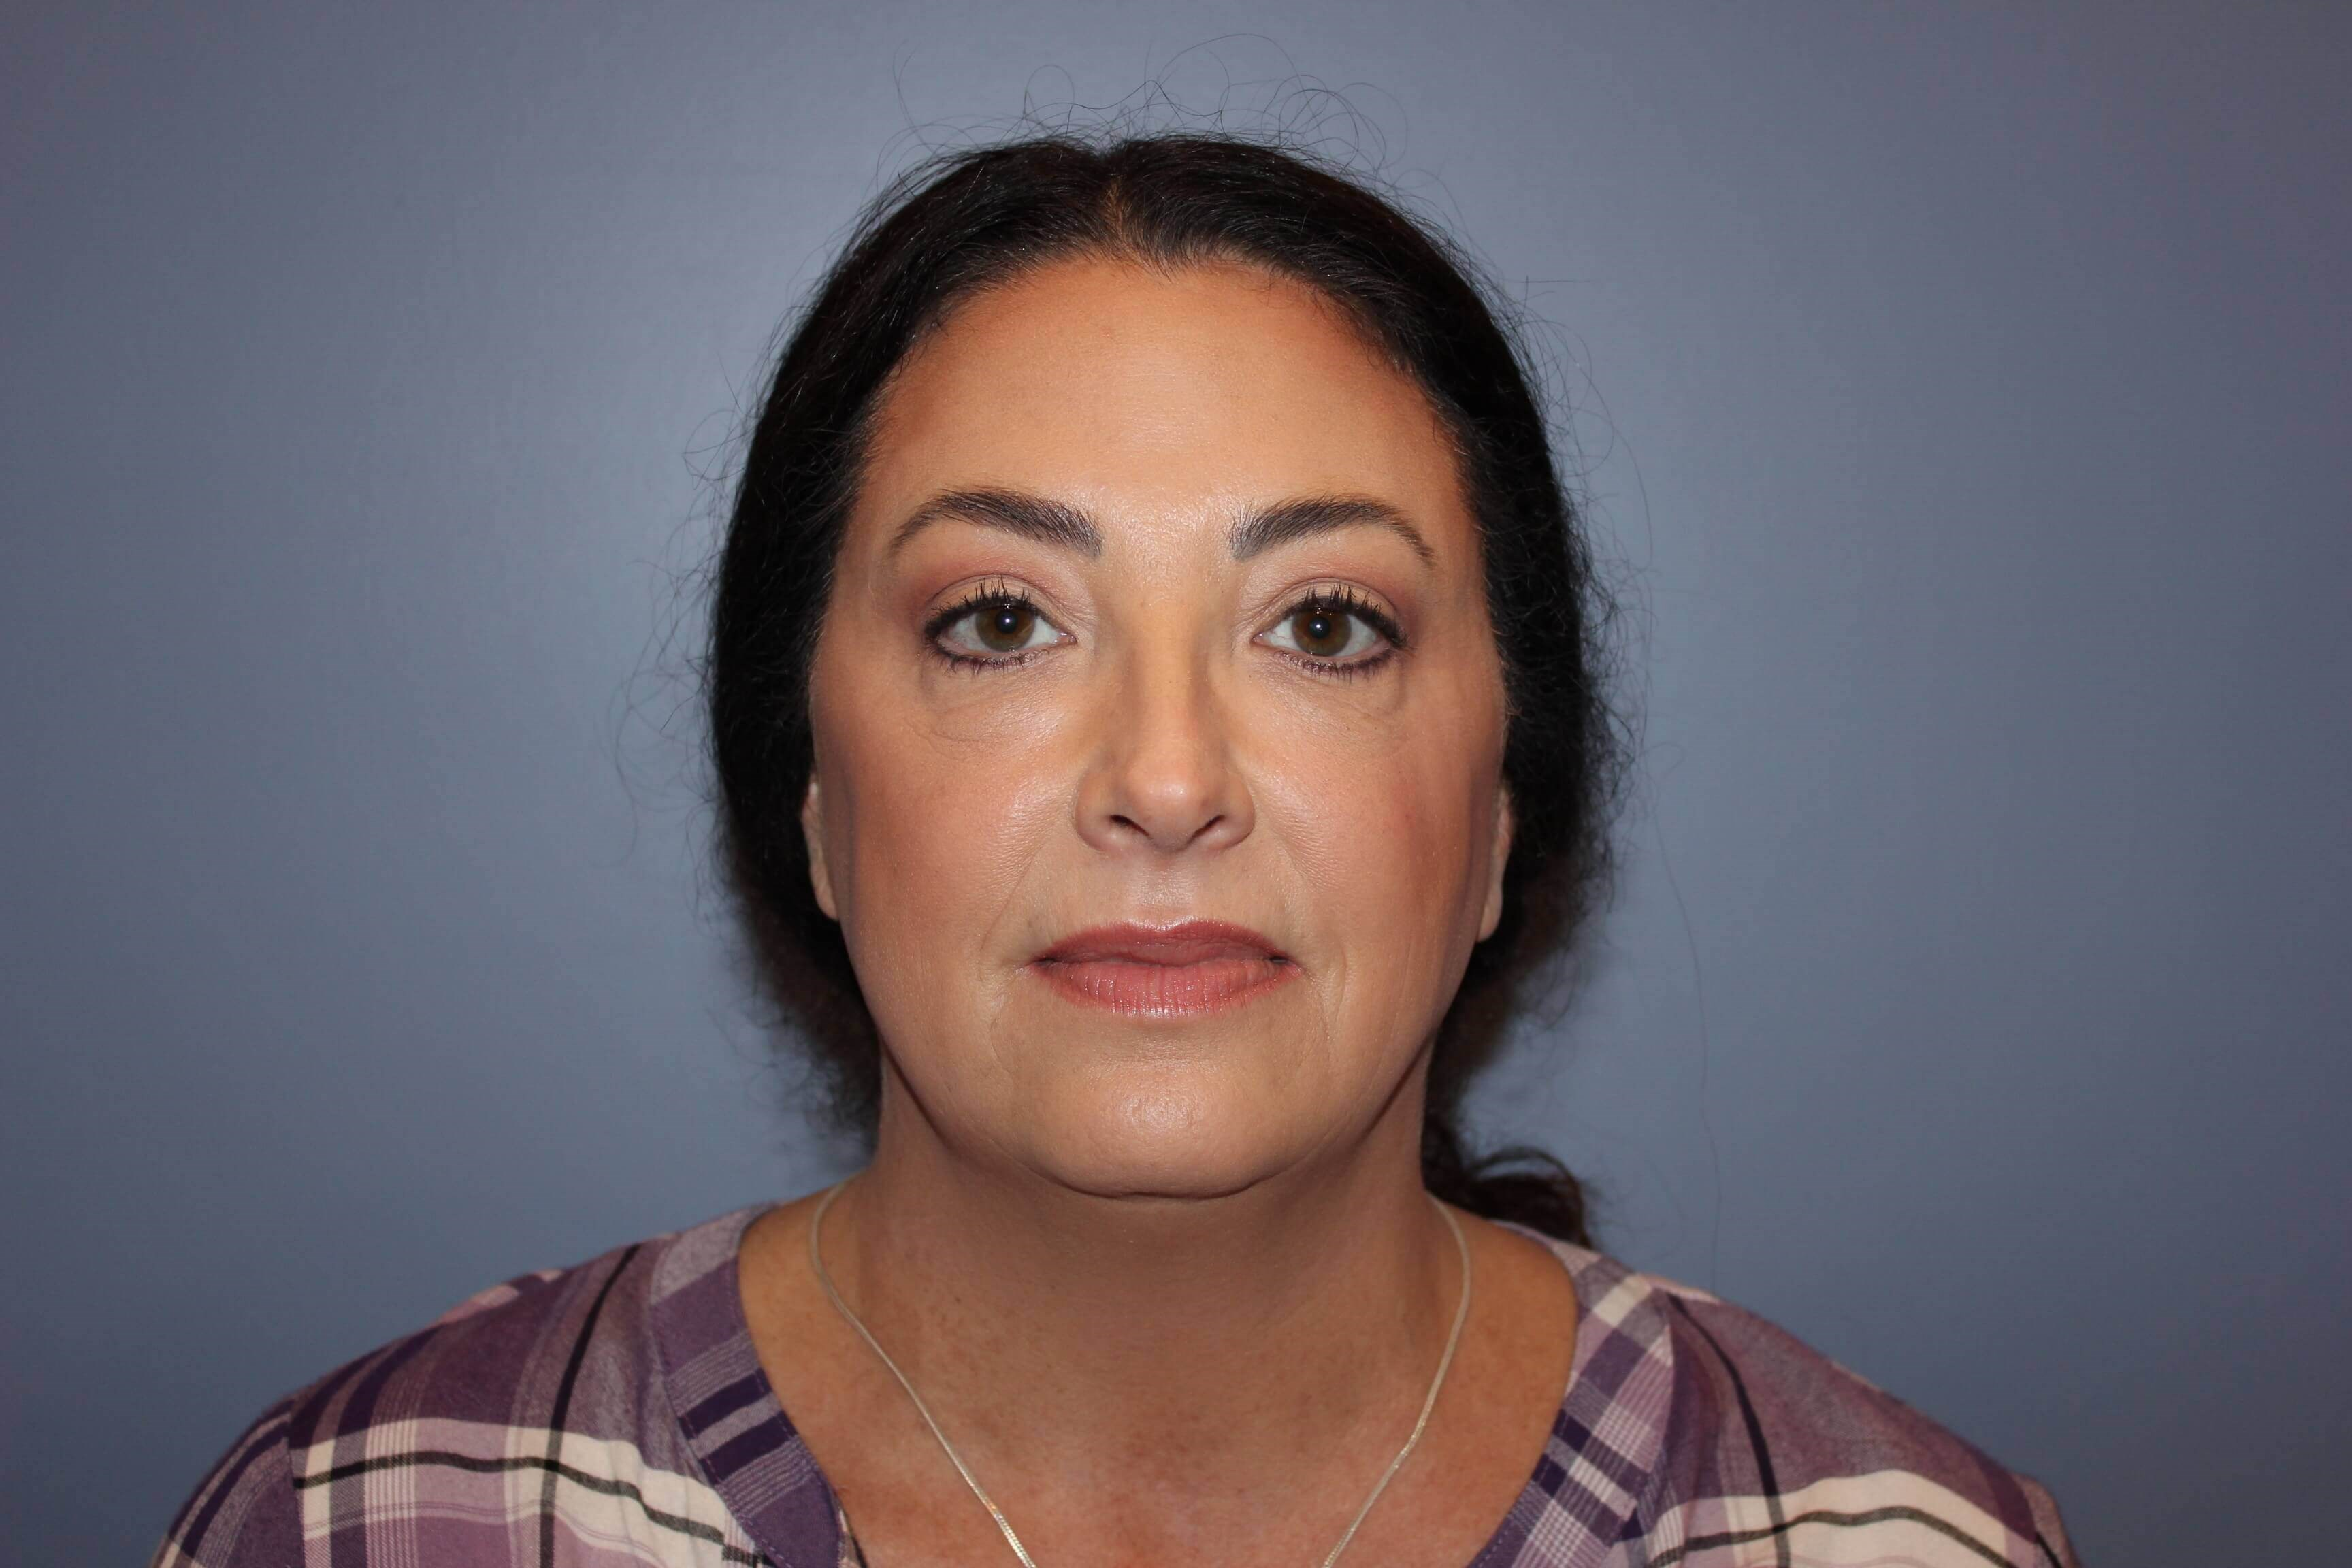 Neck Lift, Blepharoplasty Before